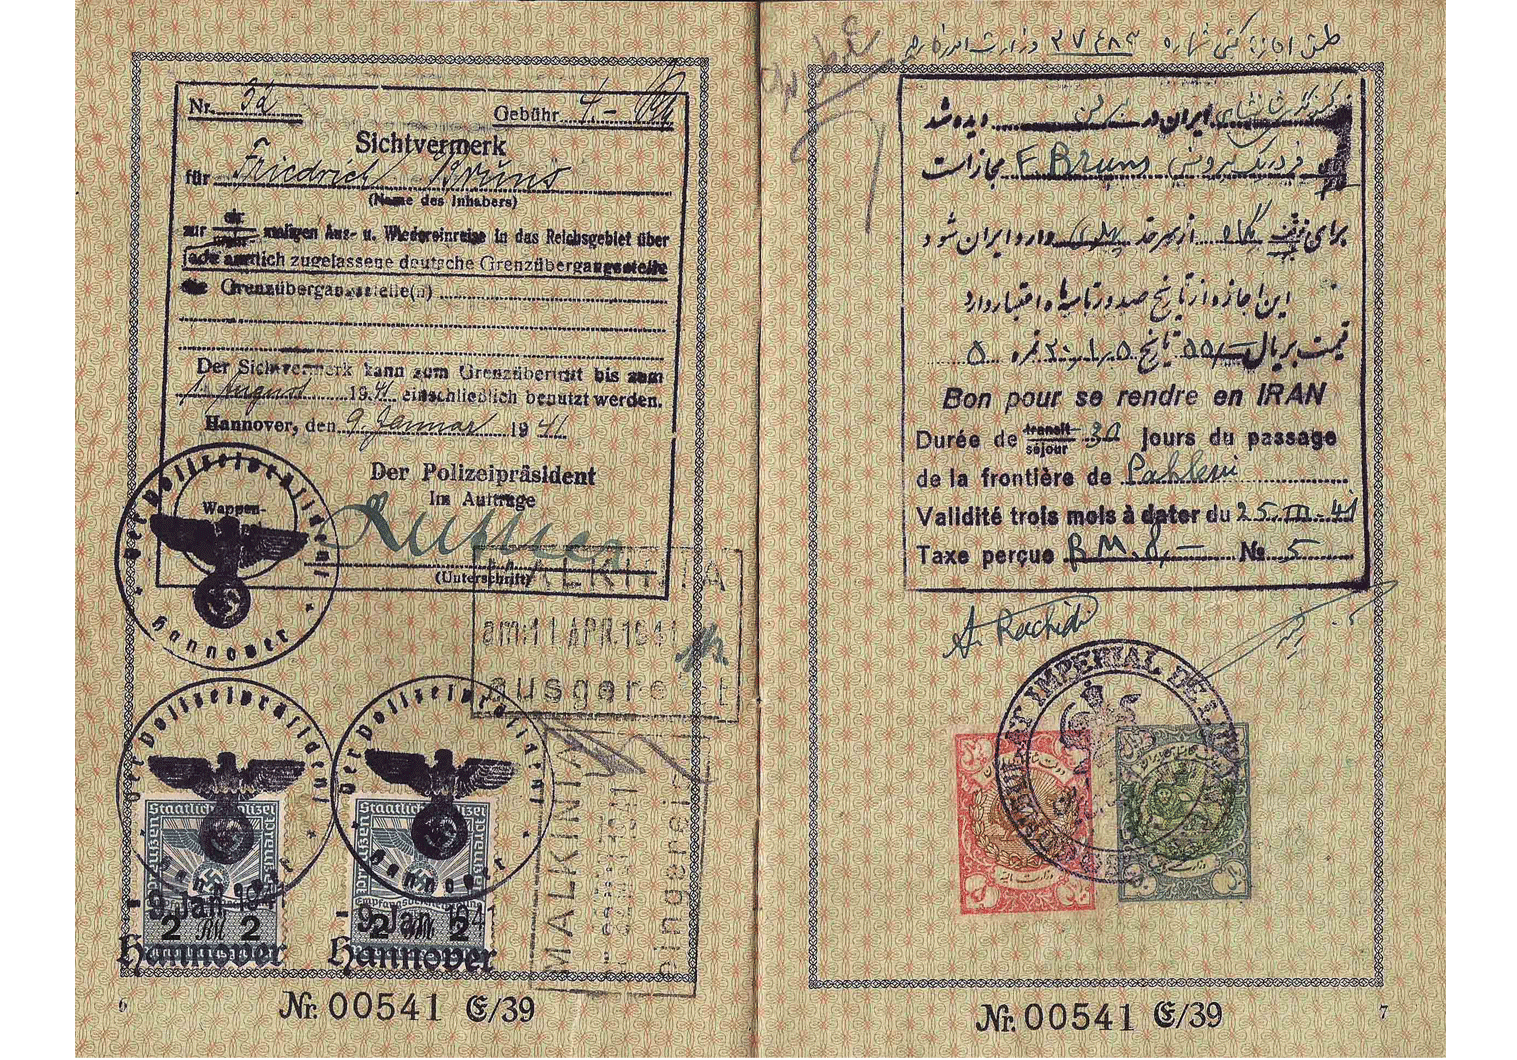 Iranian visa WW2 - German passport